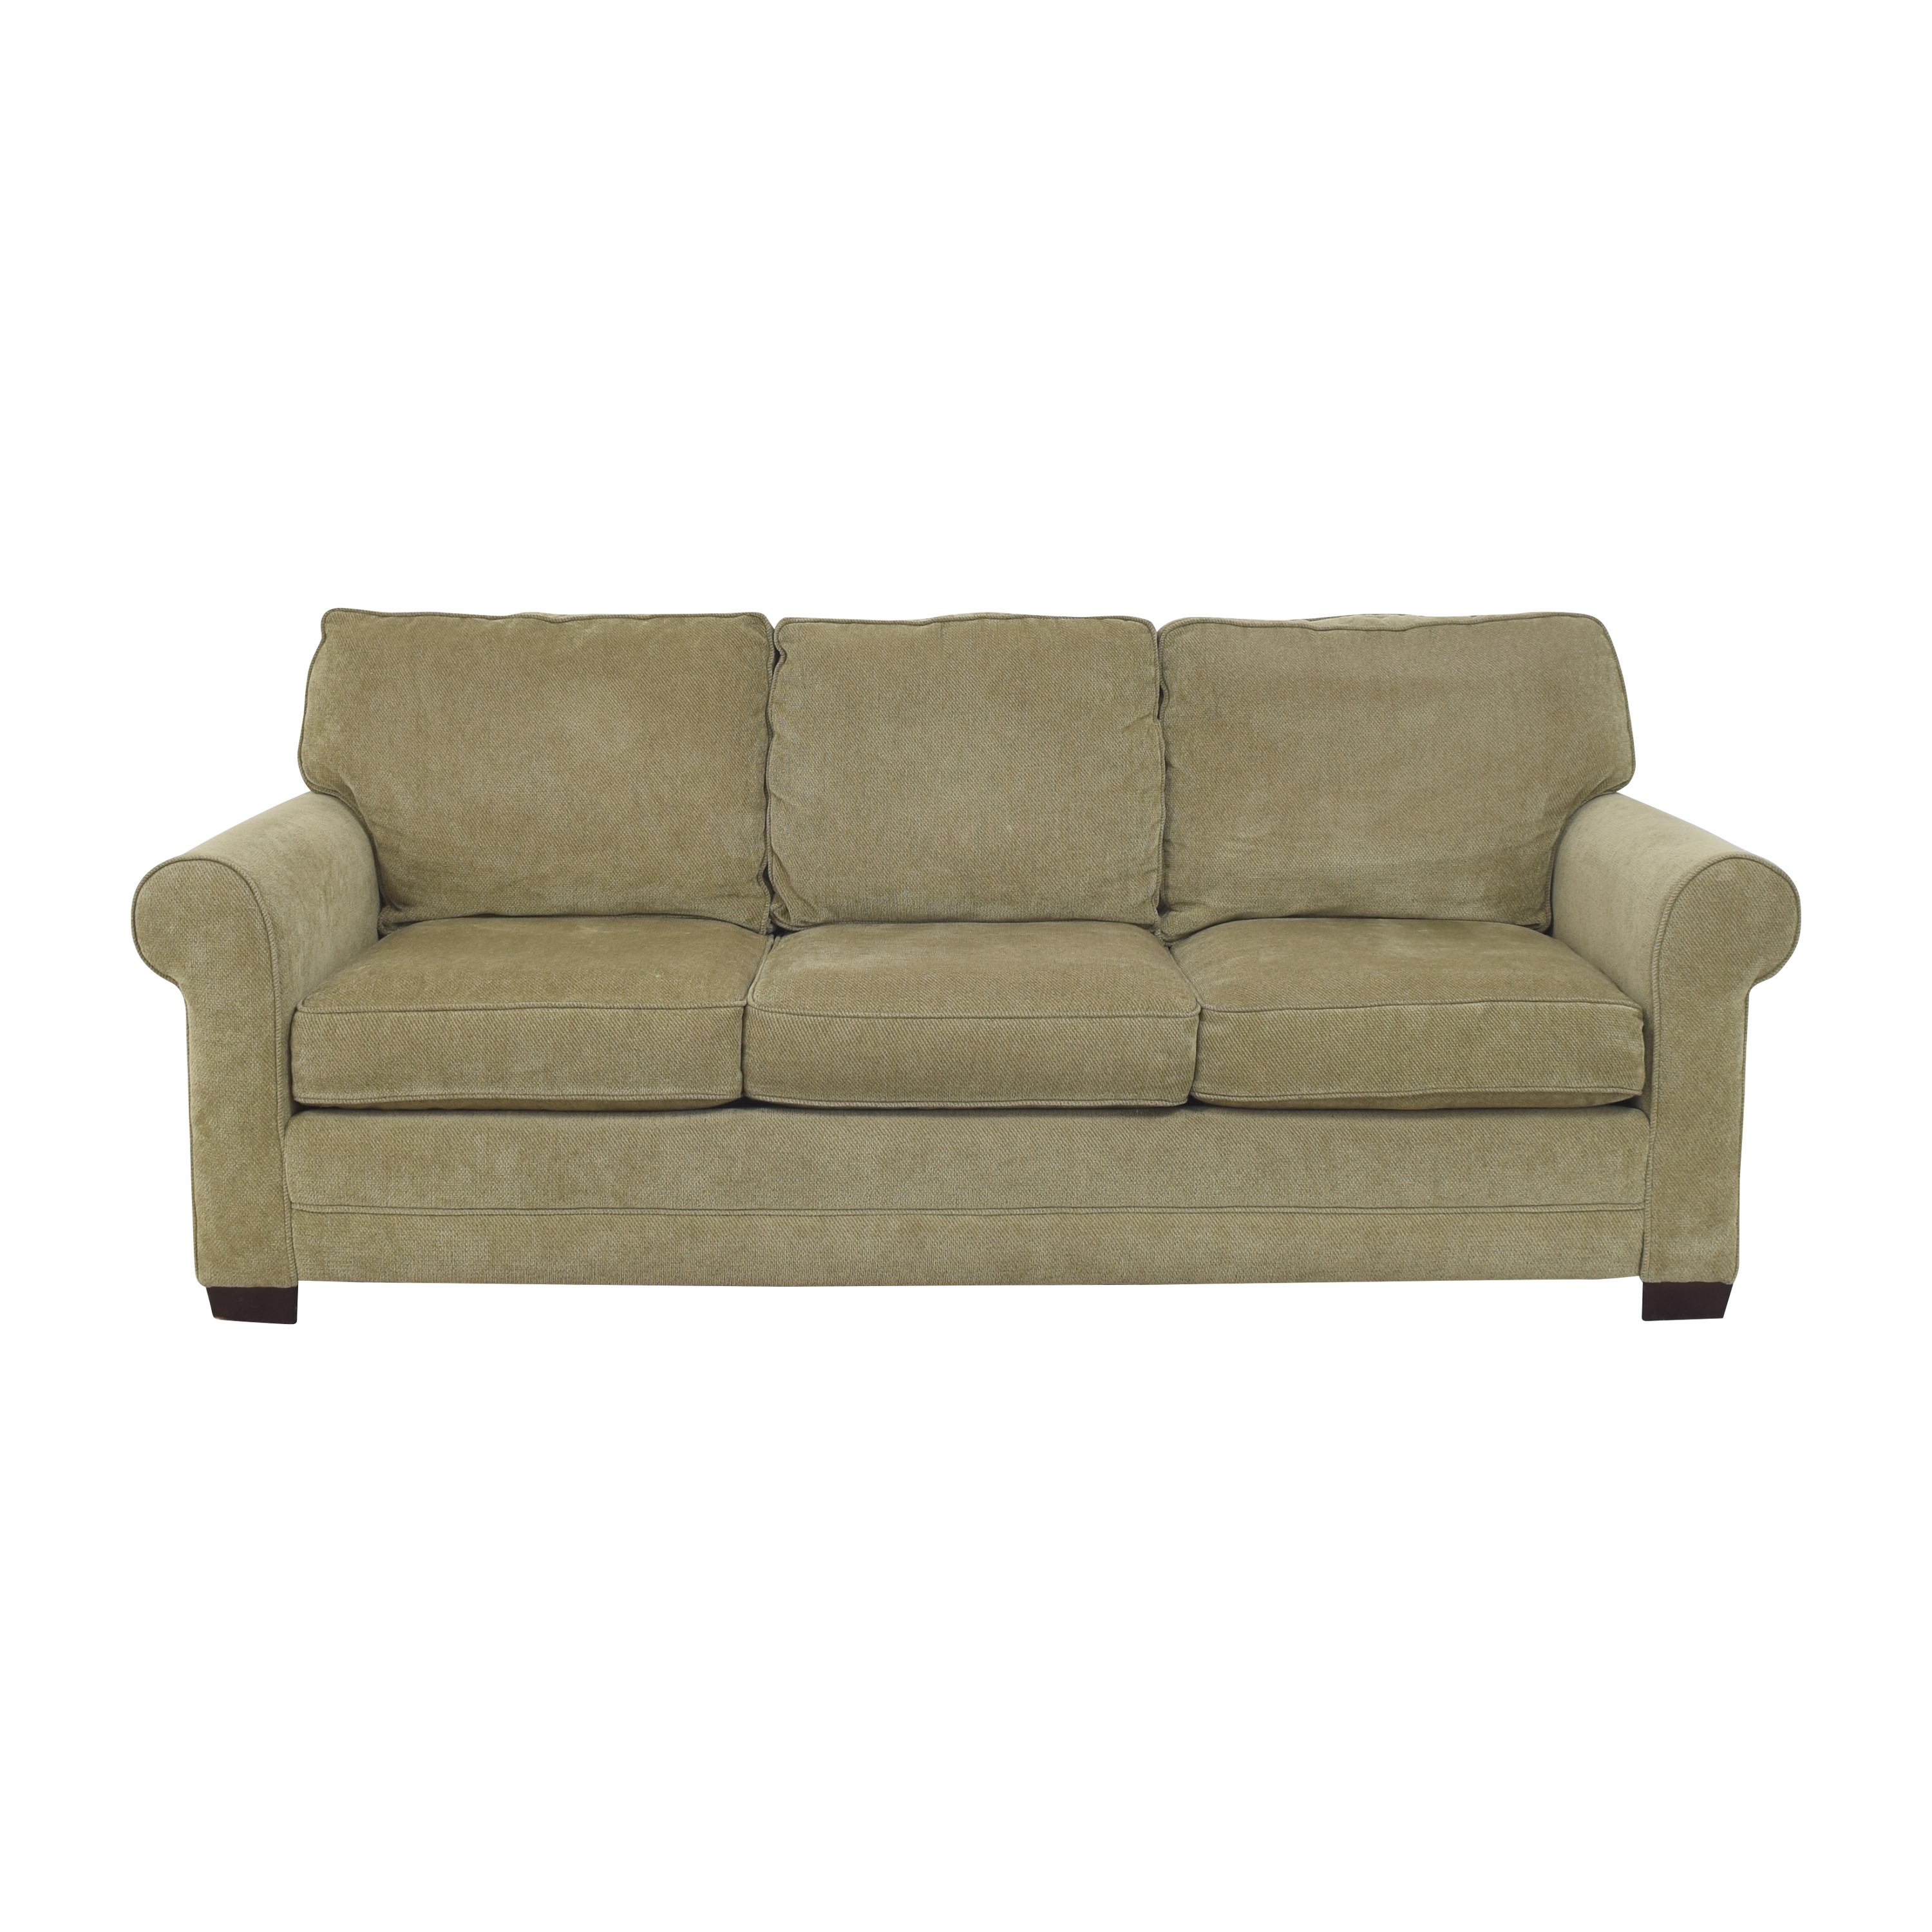 shop Raymour & Flanigan Raymour & Flanigan Three Cushion Roll Arm Sofa online